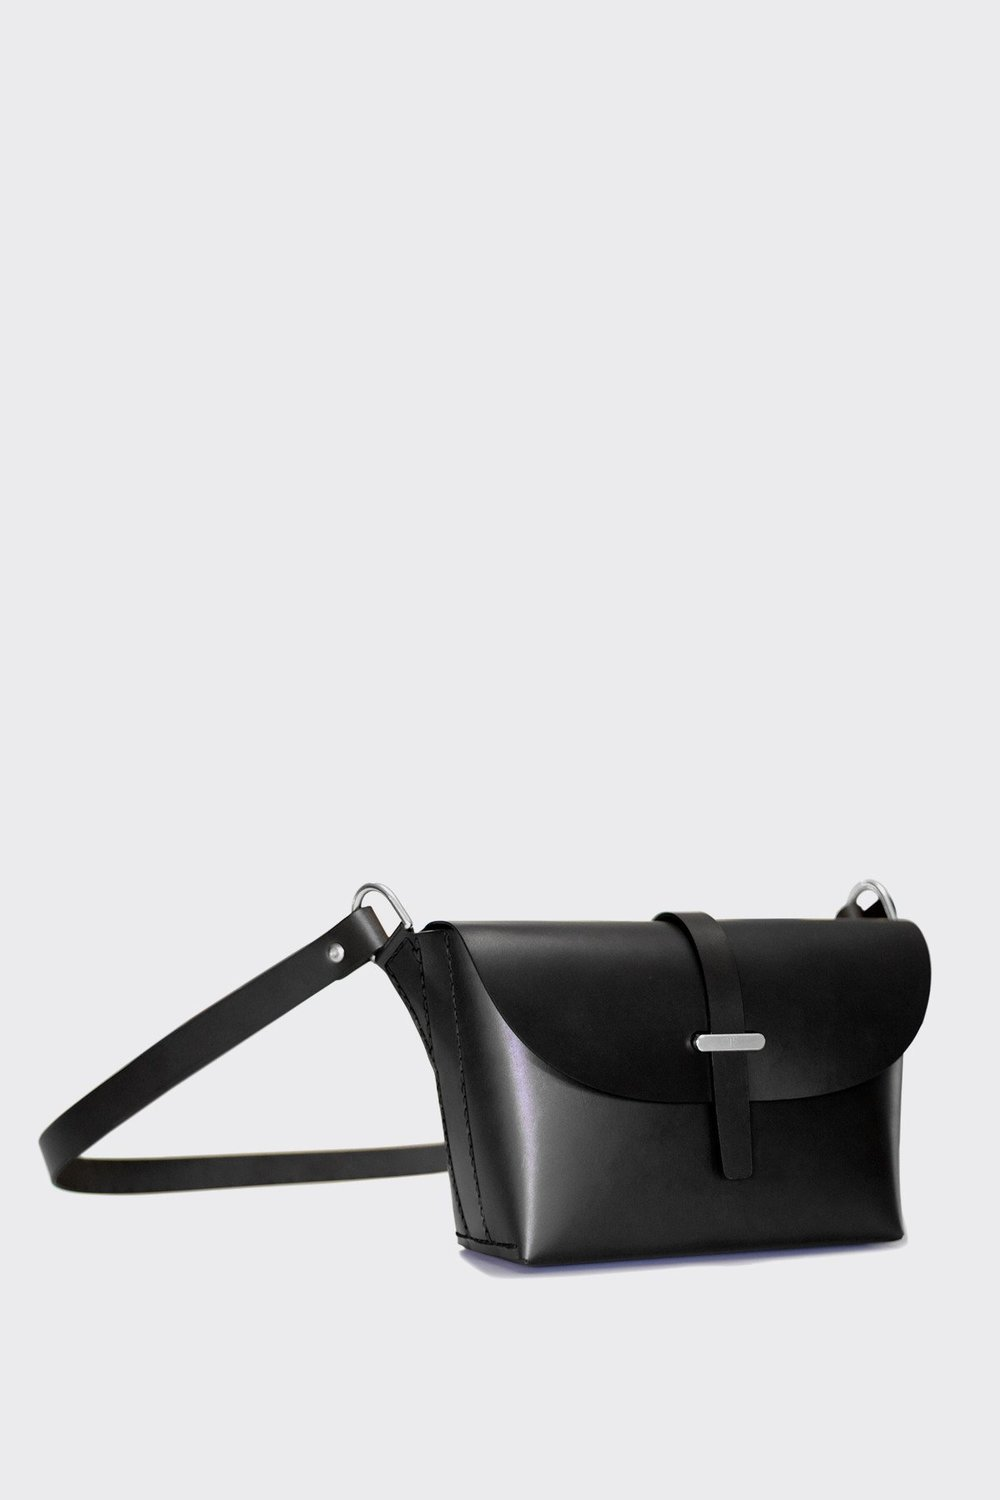 Vanishing Elephant Messenger Bag $420